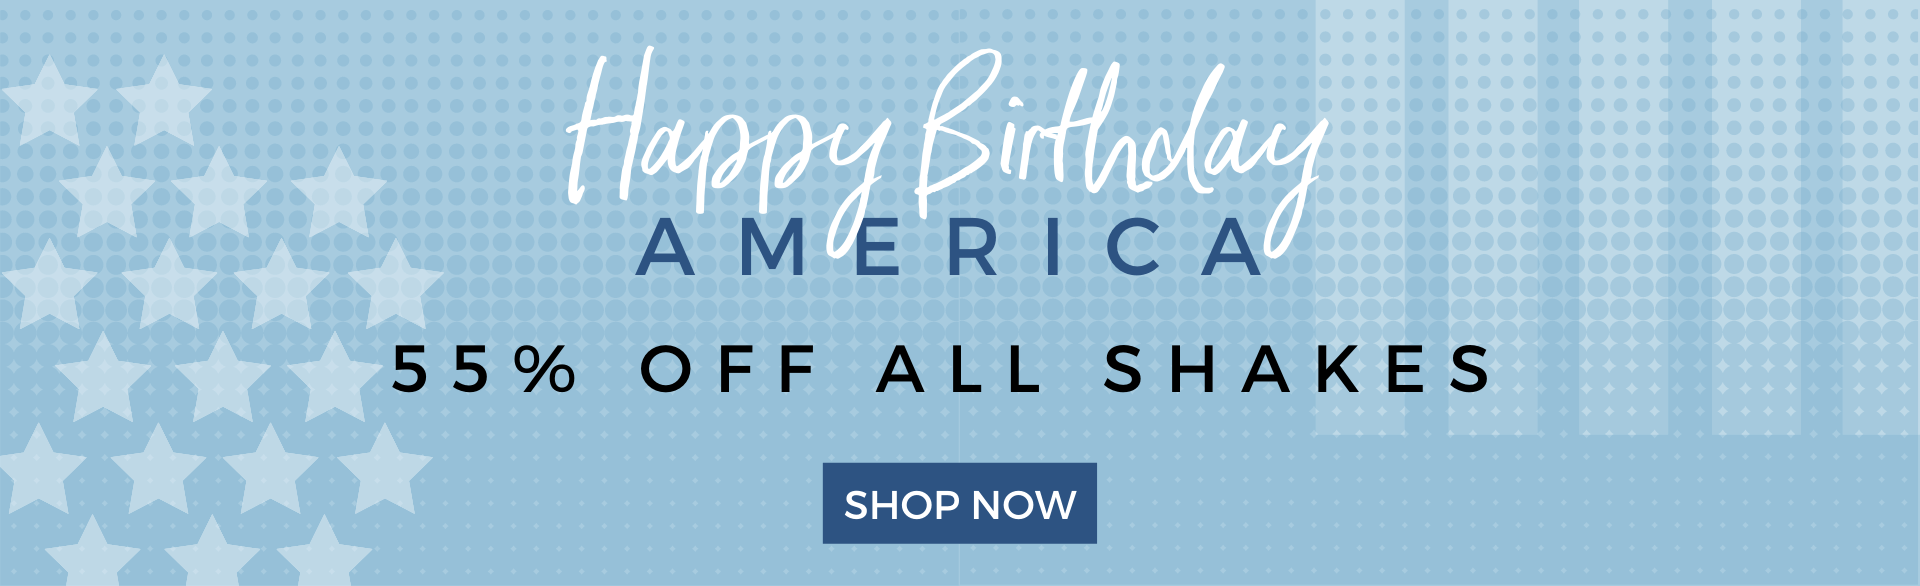 4th July Sale 55% off Idealshakes